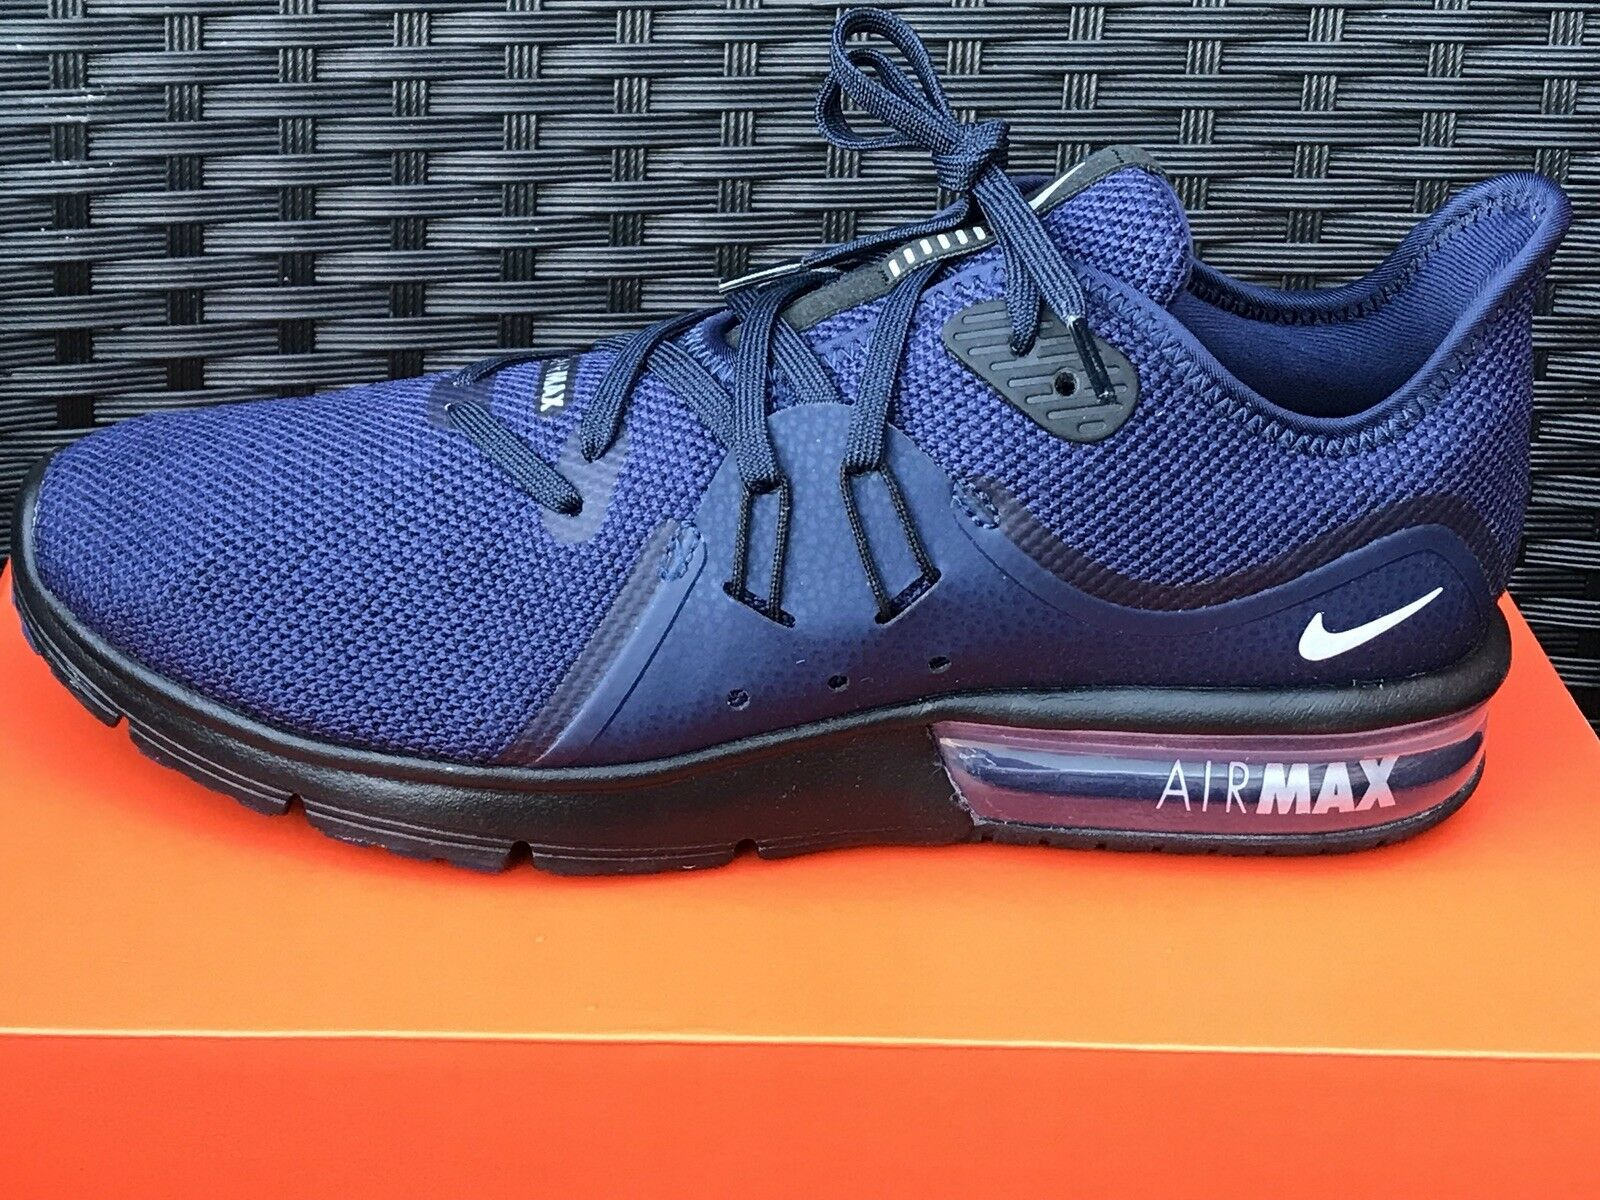 Nike  Air Max Sequent 3  Nike  Uomo Schuhes Trainers Uk 7.5 Eur 42 585fb7